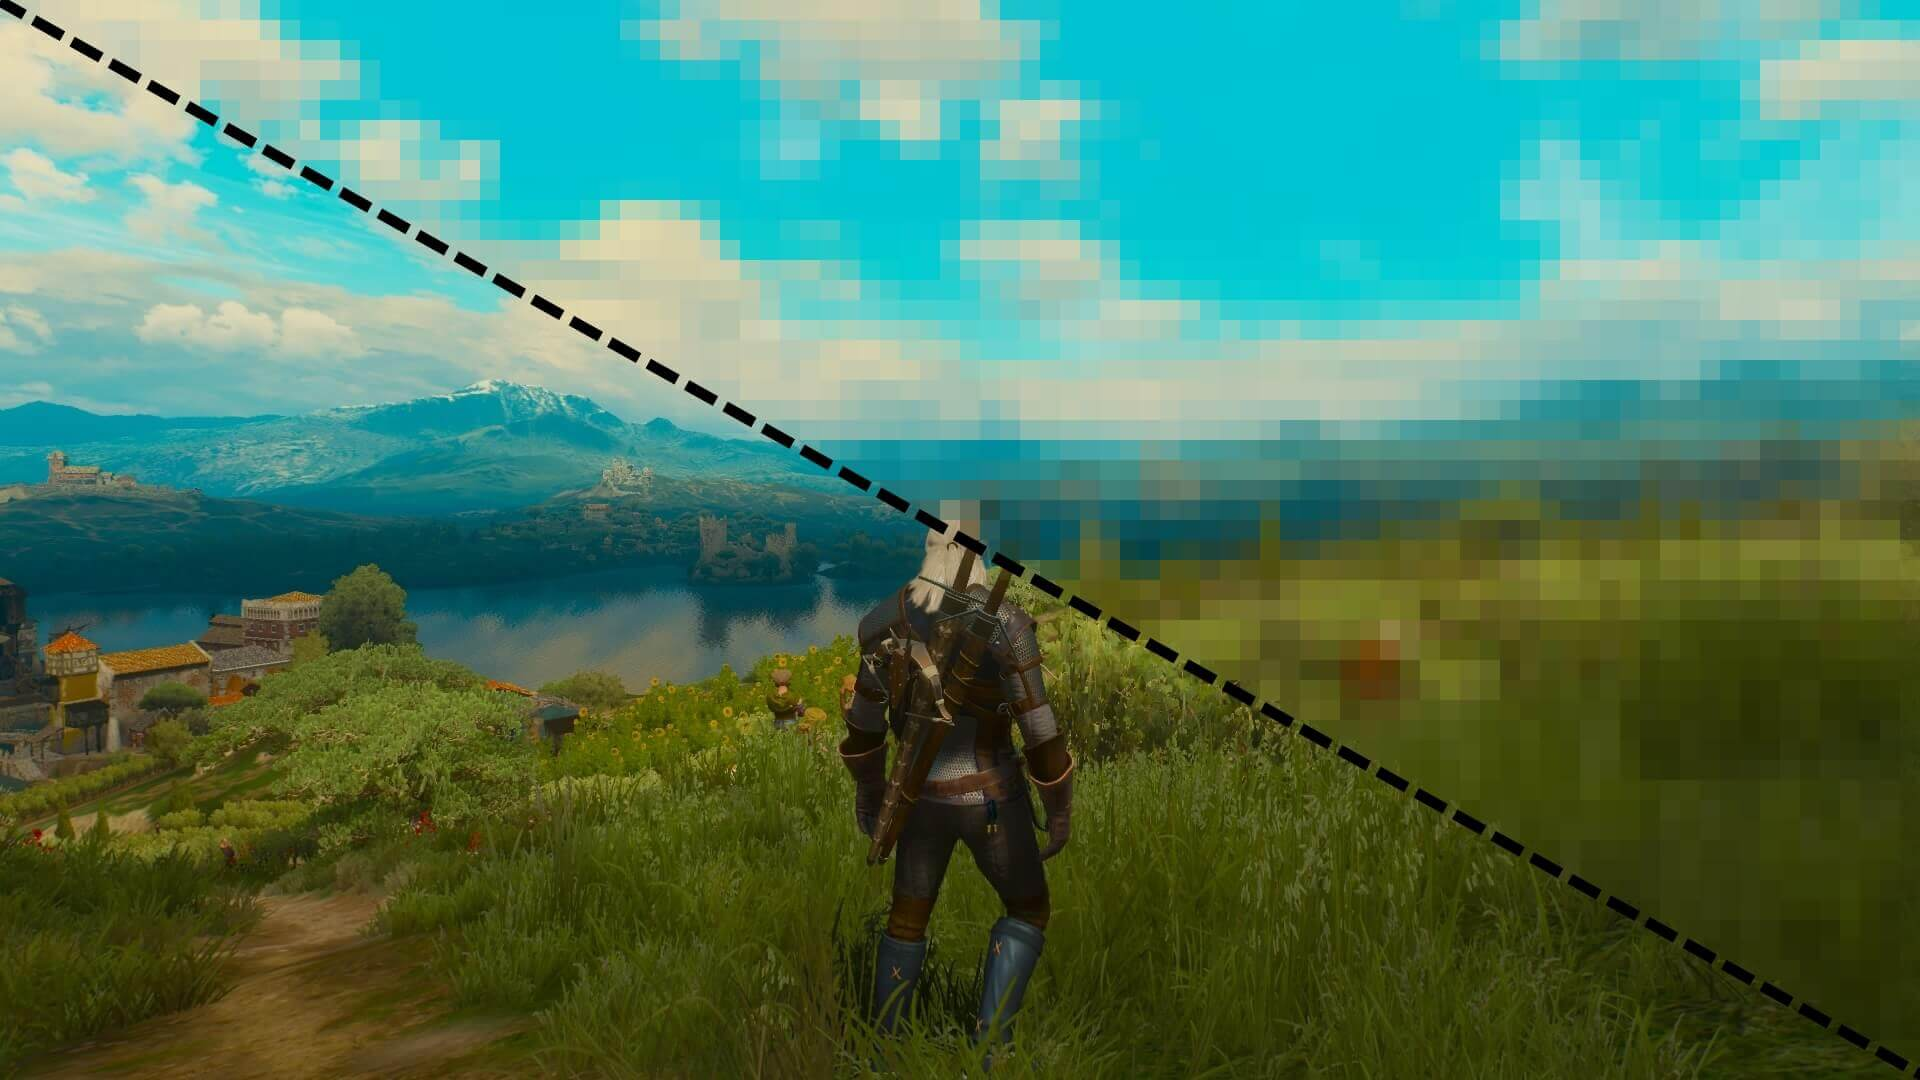 Witcher 3 pixelated